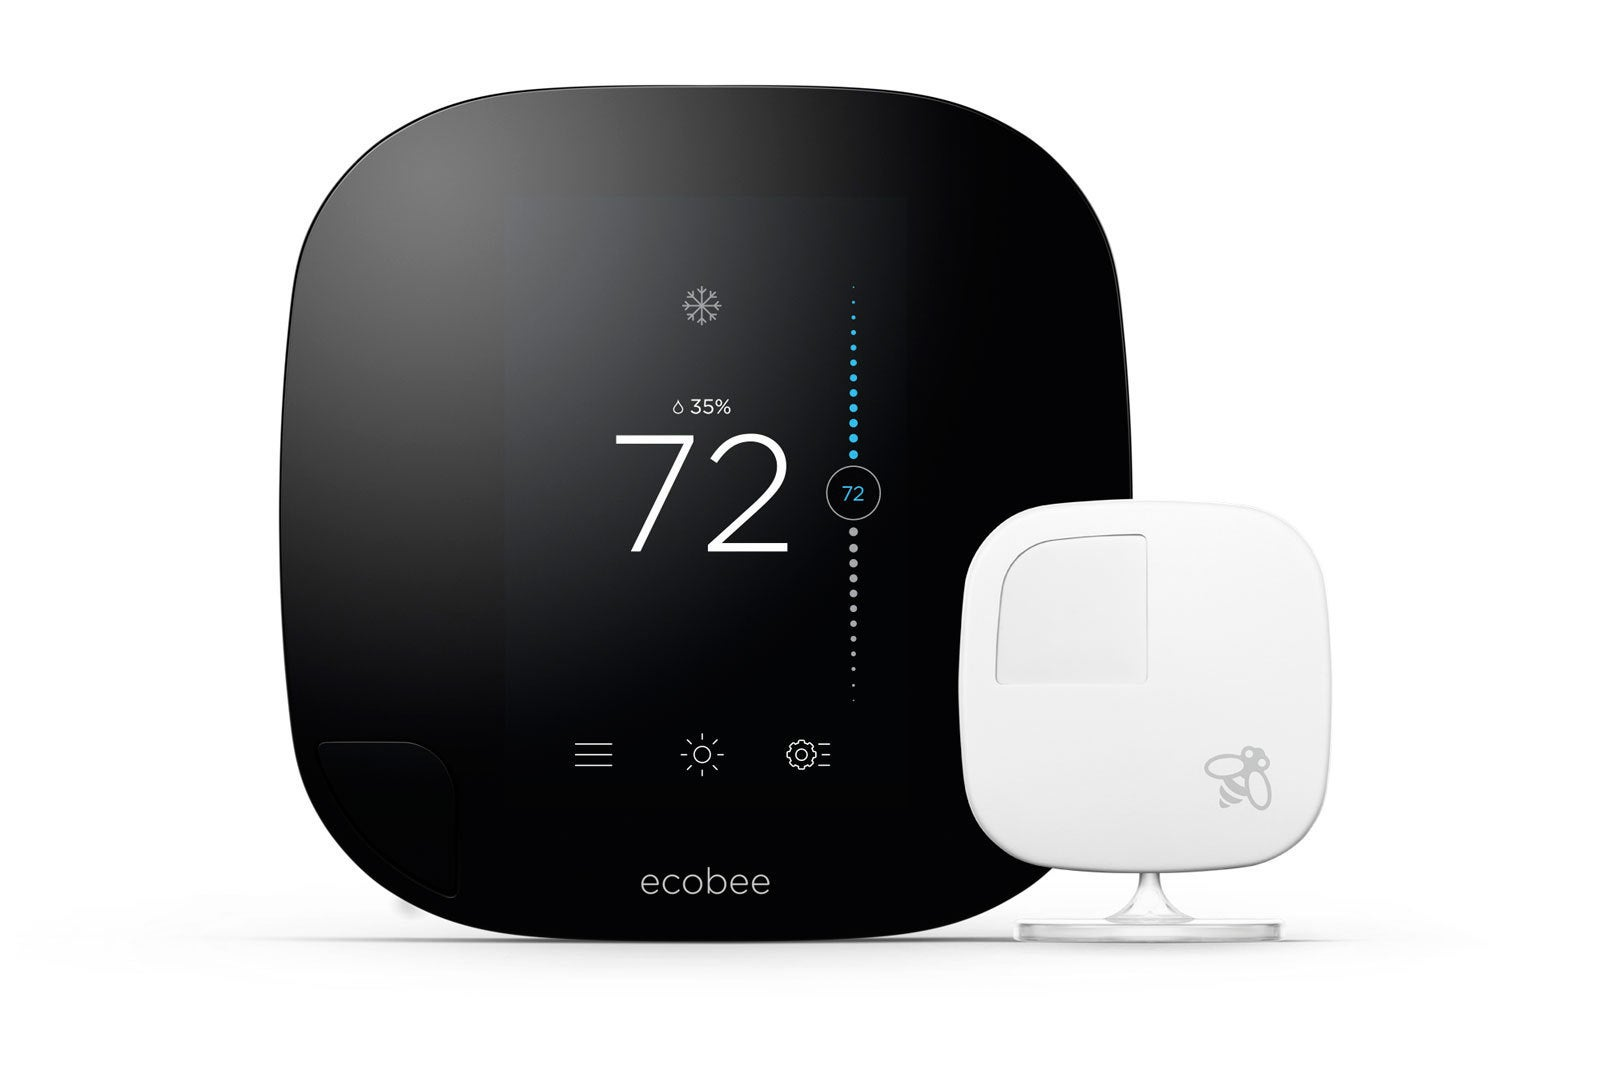 Ecobee Sensor Ecobee3 Smart Thermostat Review It S All About That Sensor Techhive